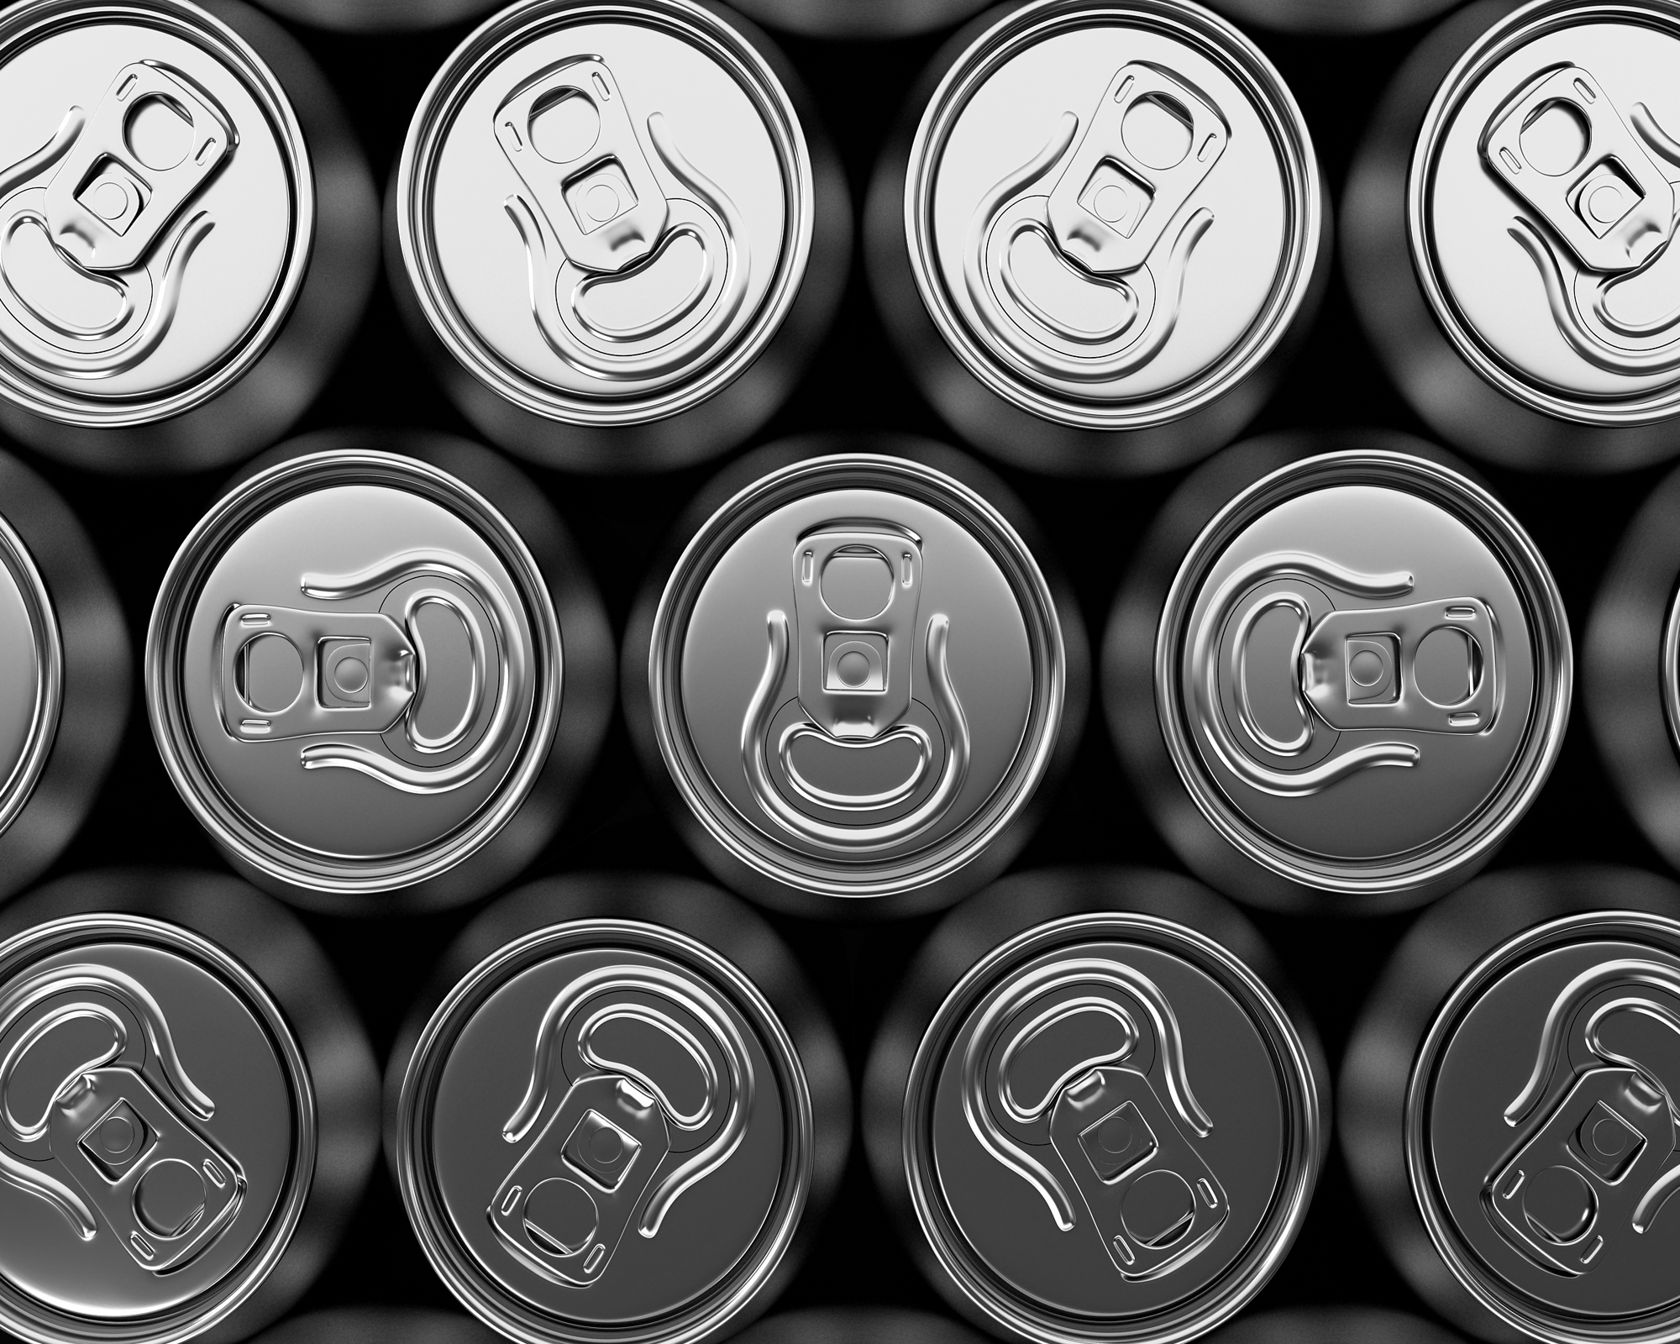 Alton expands recycling aluminium cans